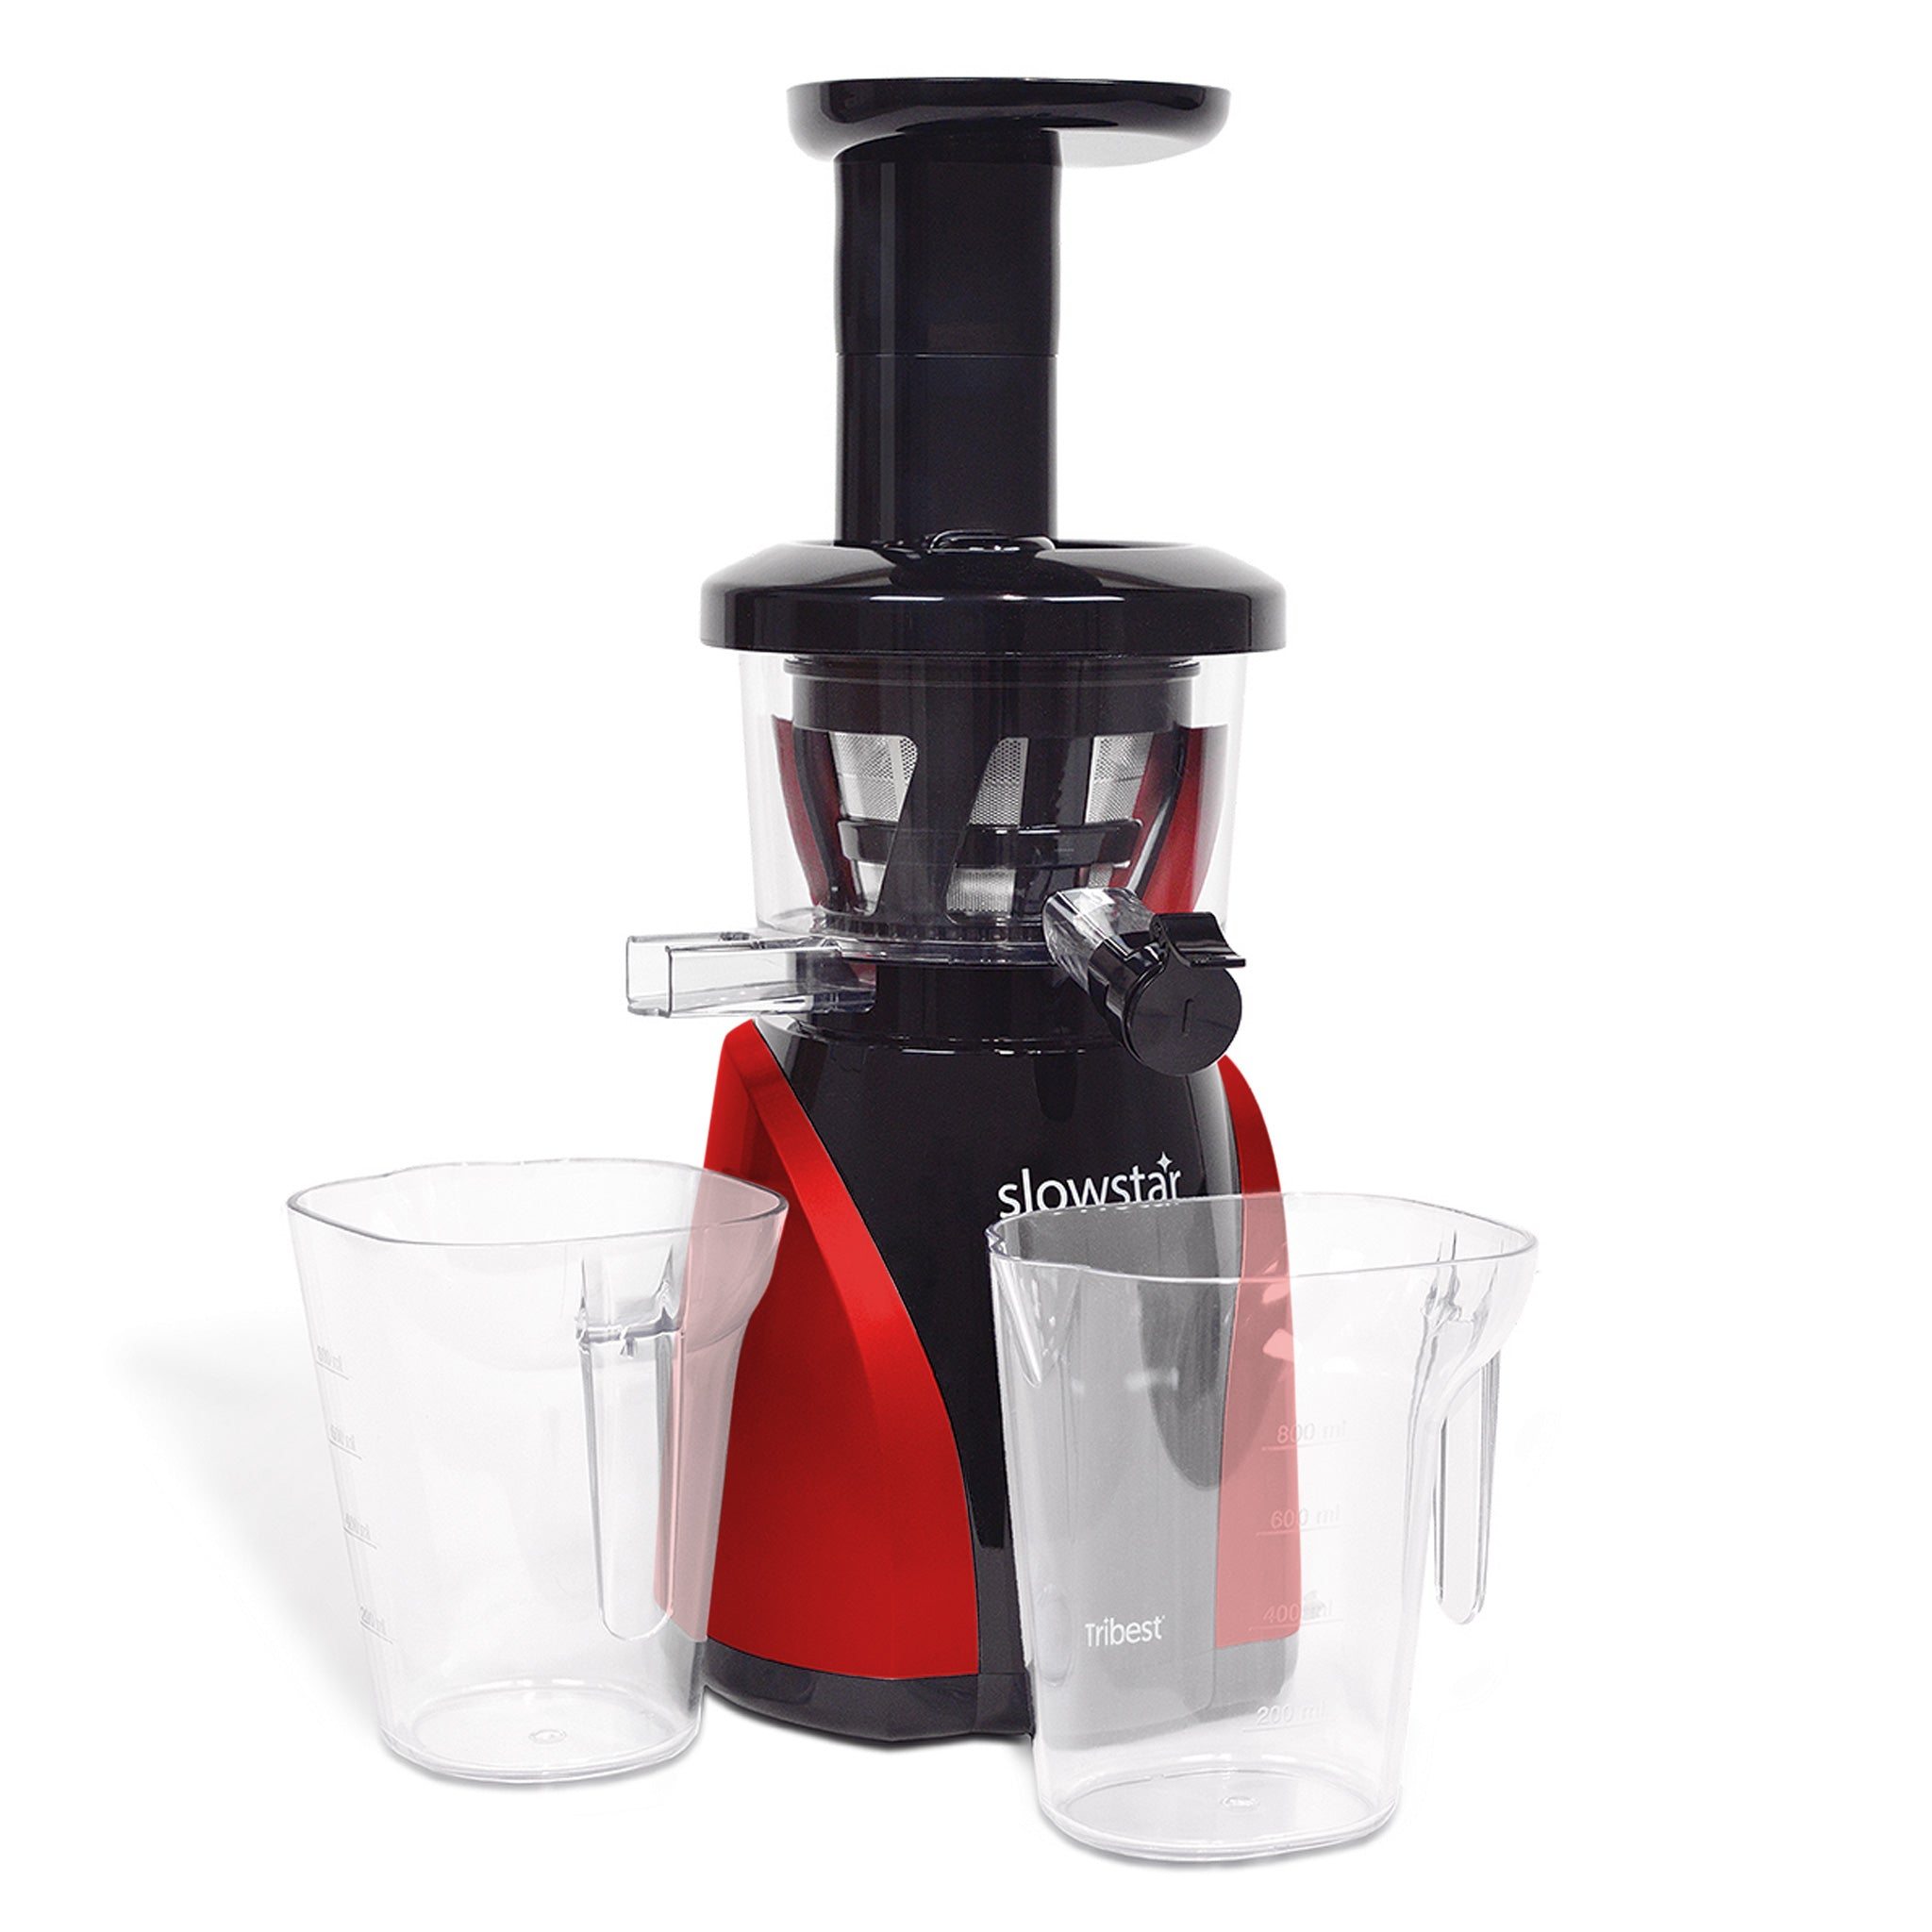 Slowstar® Vertical Slow Juicer & Mincer in Red SW-2000-B - Tribest